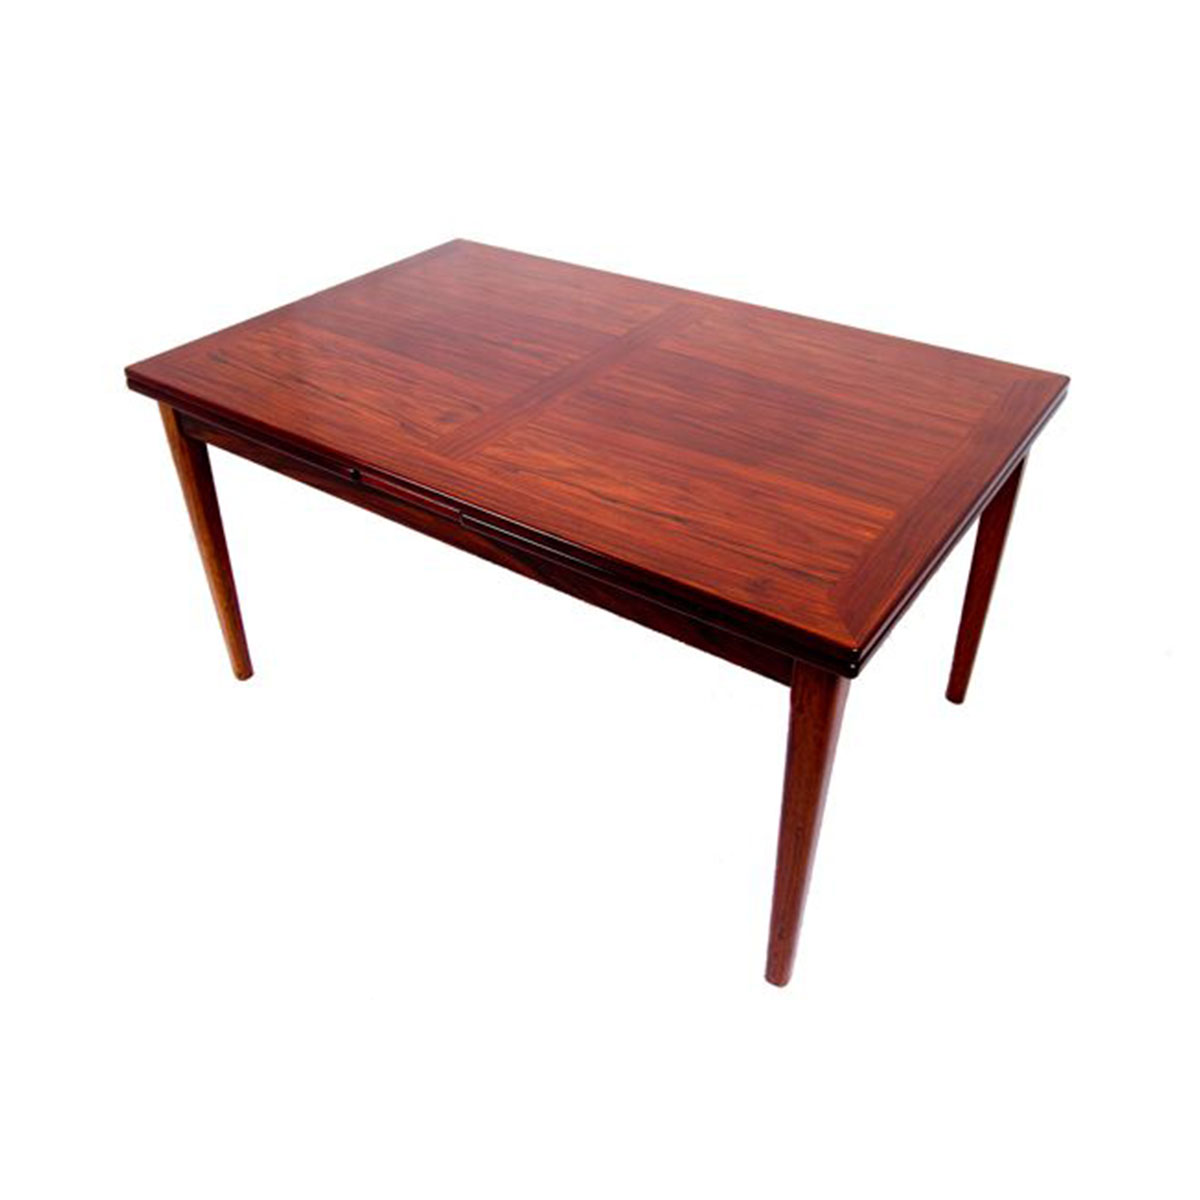 Compact Danish Modern Rosewood Expanding Dining Table